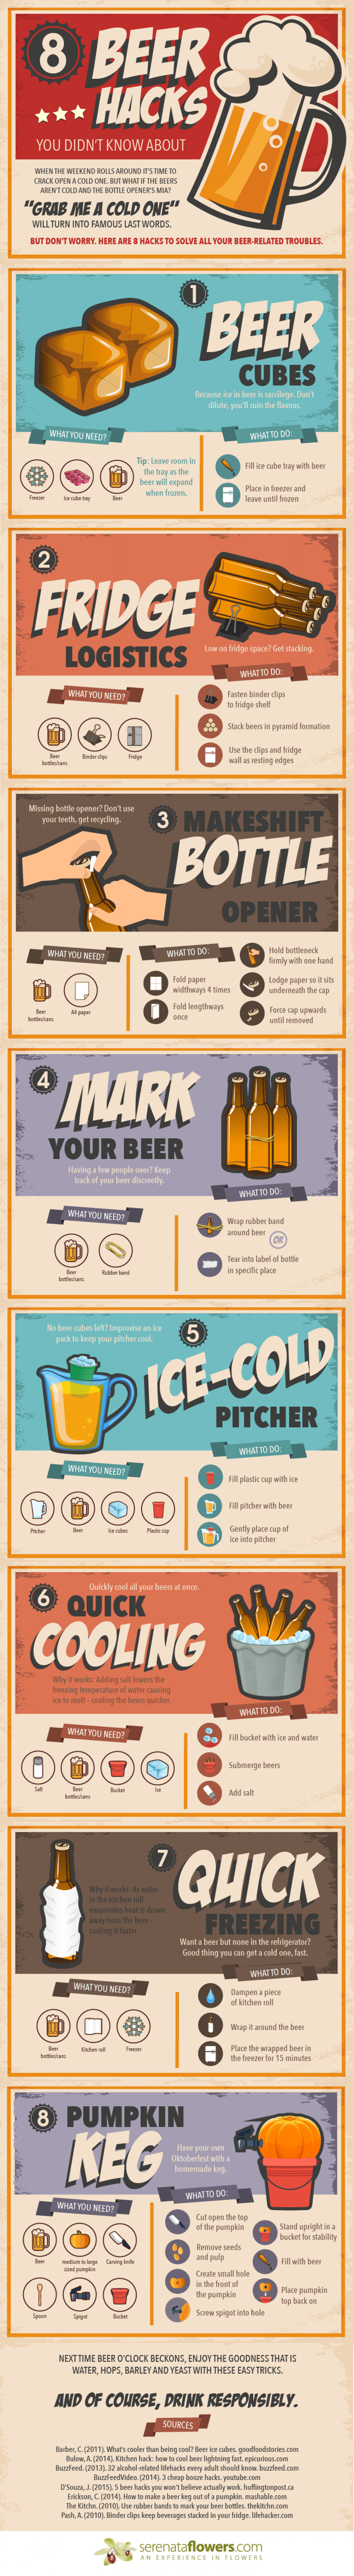 8-beer-hacks-you-need-to-know-right-now_55e7f8f79e079_w1500.png